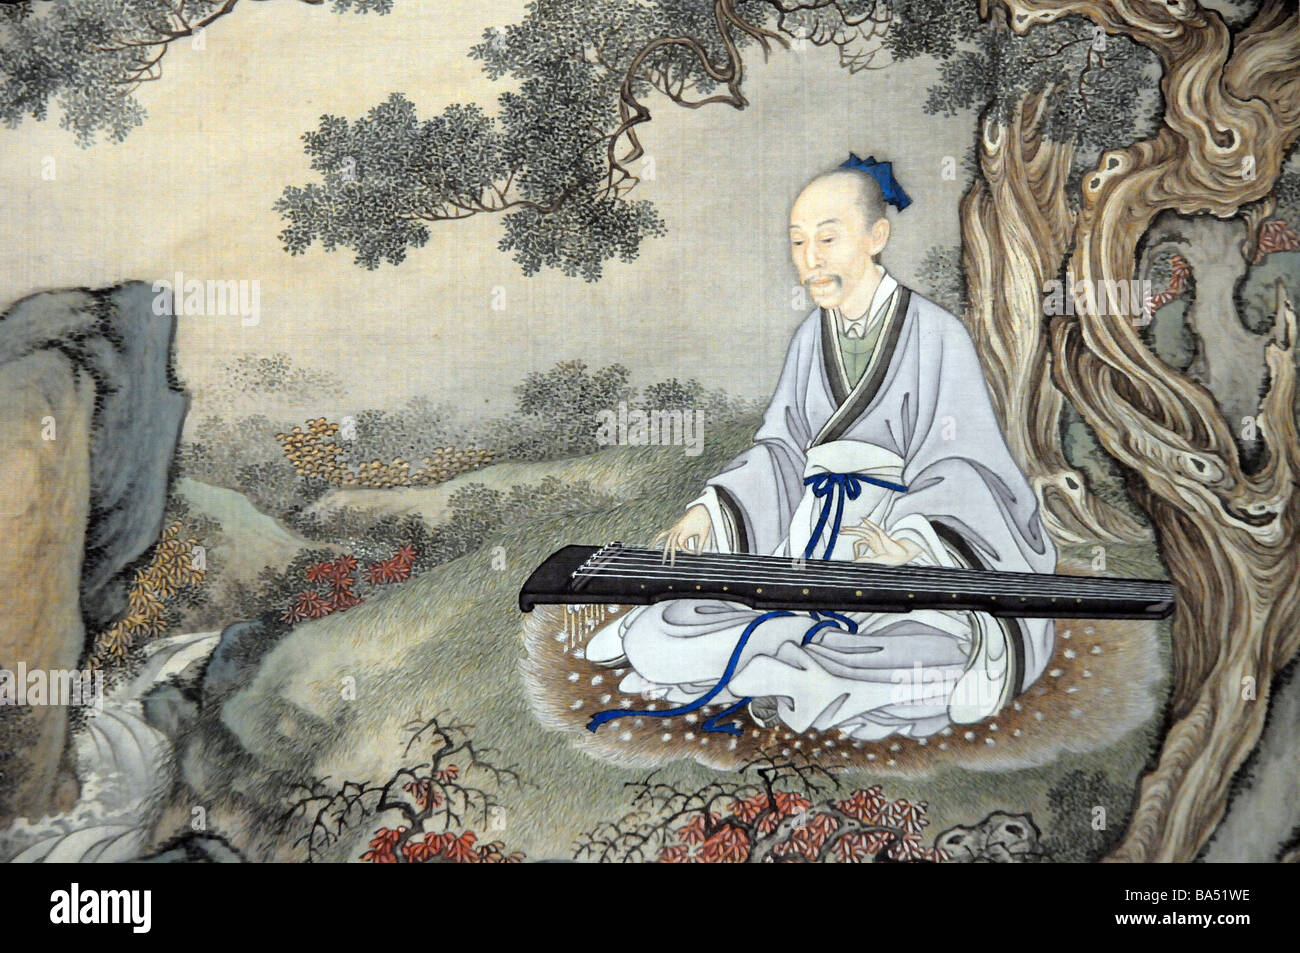 Ancient Chinese painting of wise man playing a Guqin - a ...  Ancient Chinese...